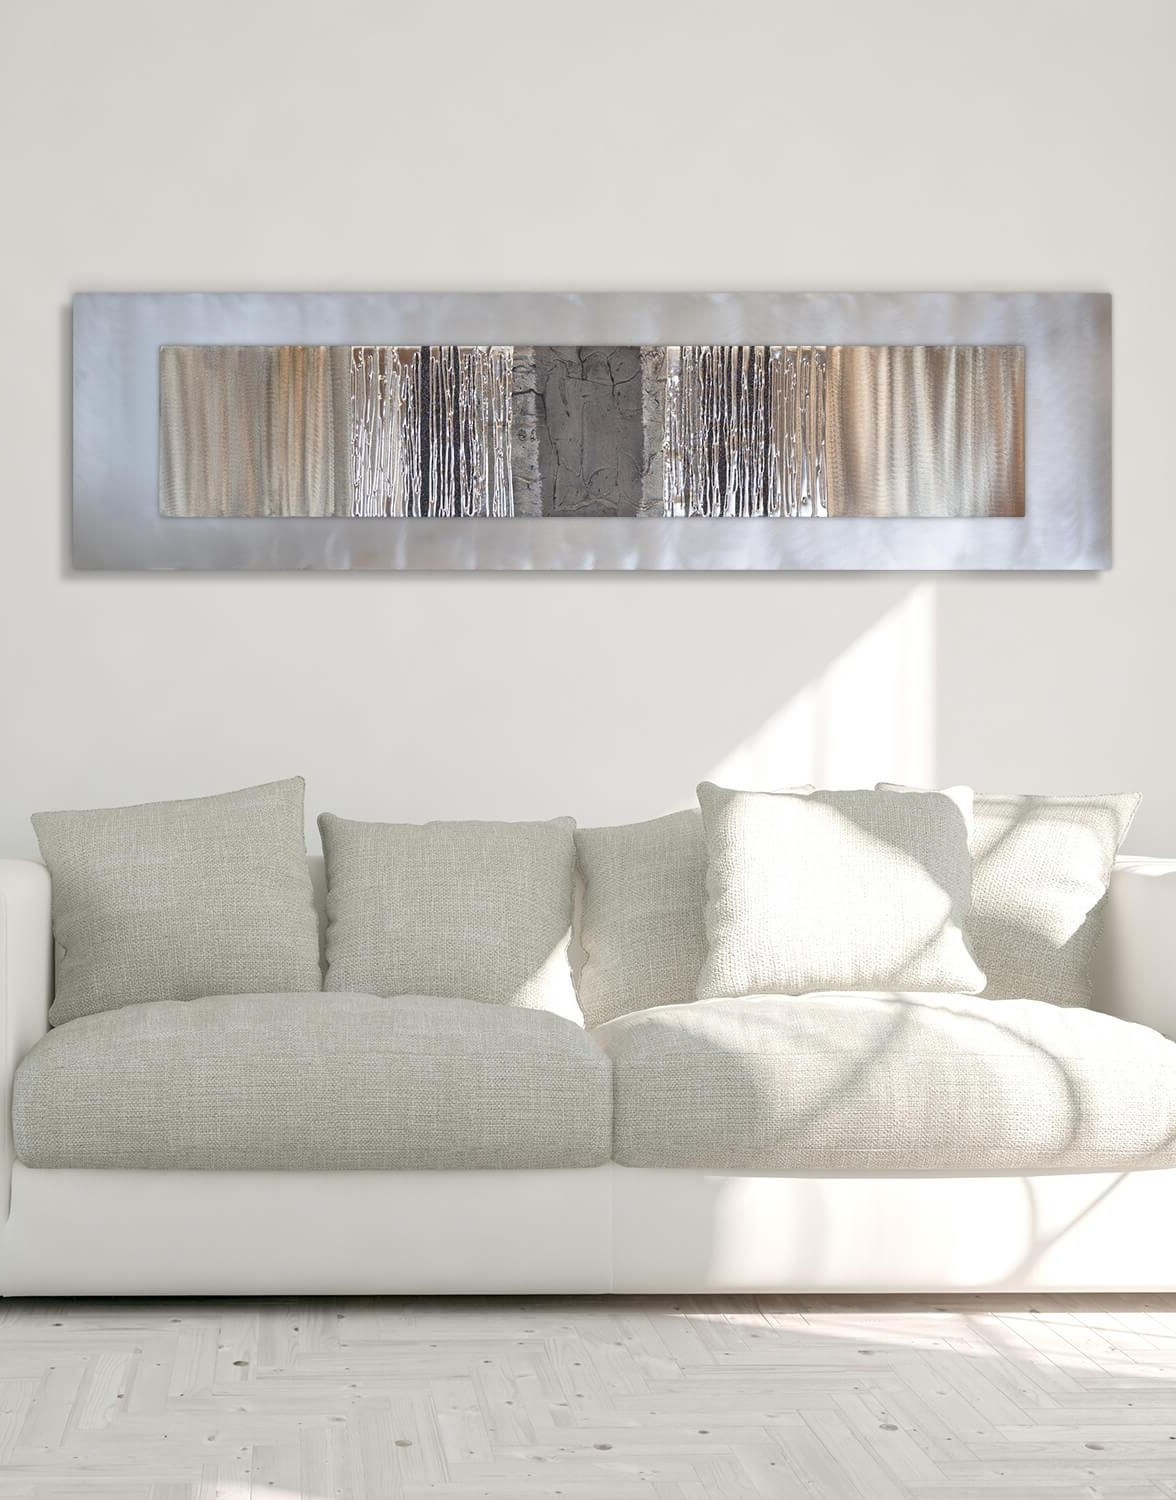 Well Liked Endearing Image Silver Wall Art Silver Wall Art Home Design Within Silver Wall Art (View 15 of 15)